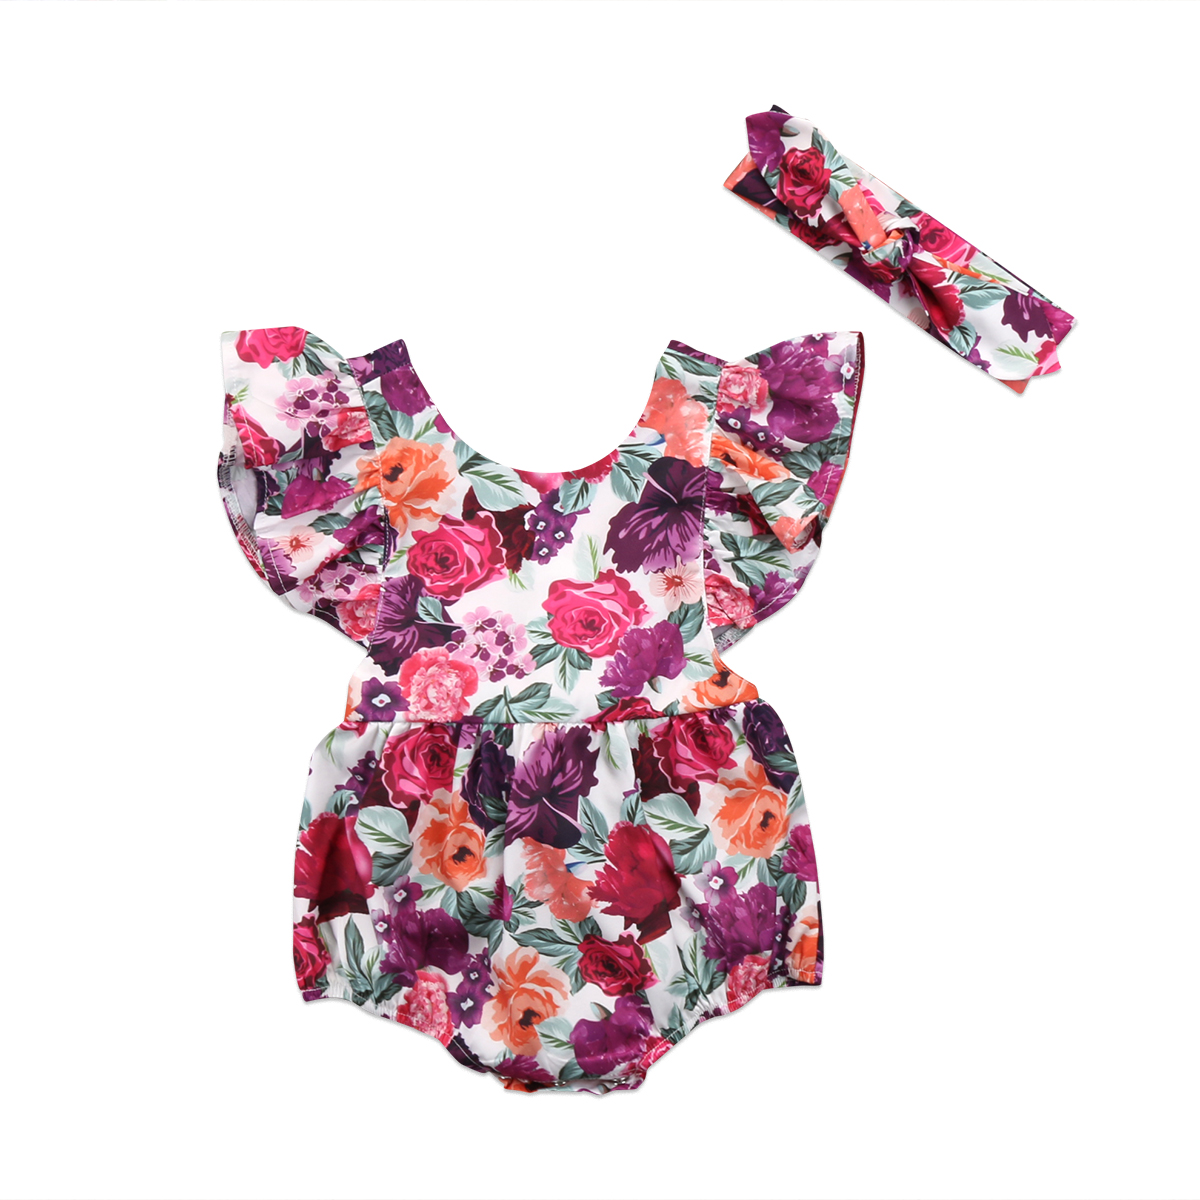 One-Pieces Toddler Baby Girls Backless Rompers Jumpsuit Floral Ruffles Romper Outfit Headband Clothes Summer